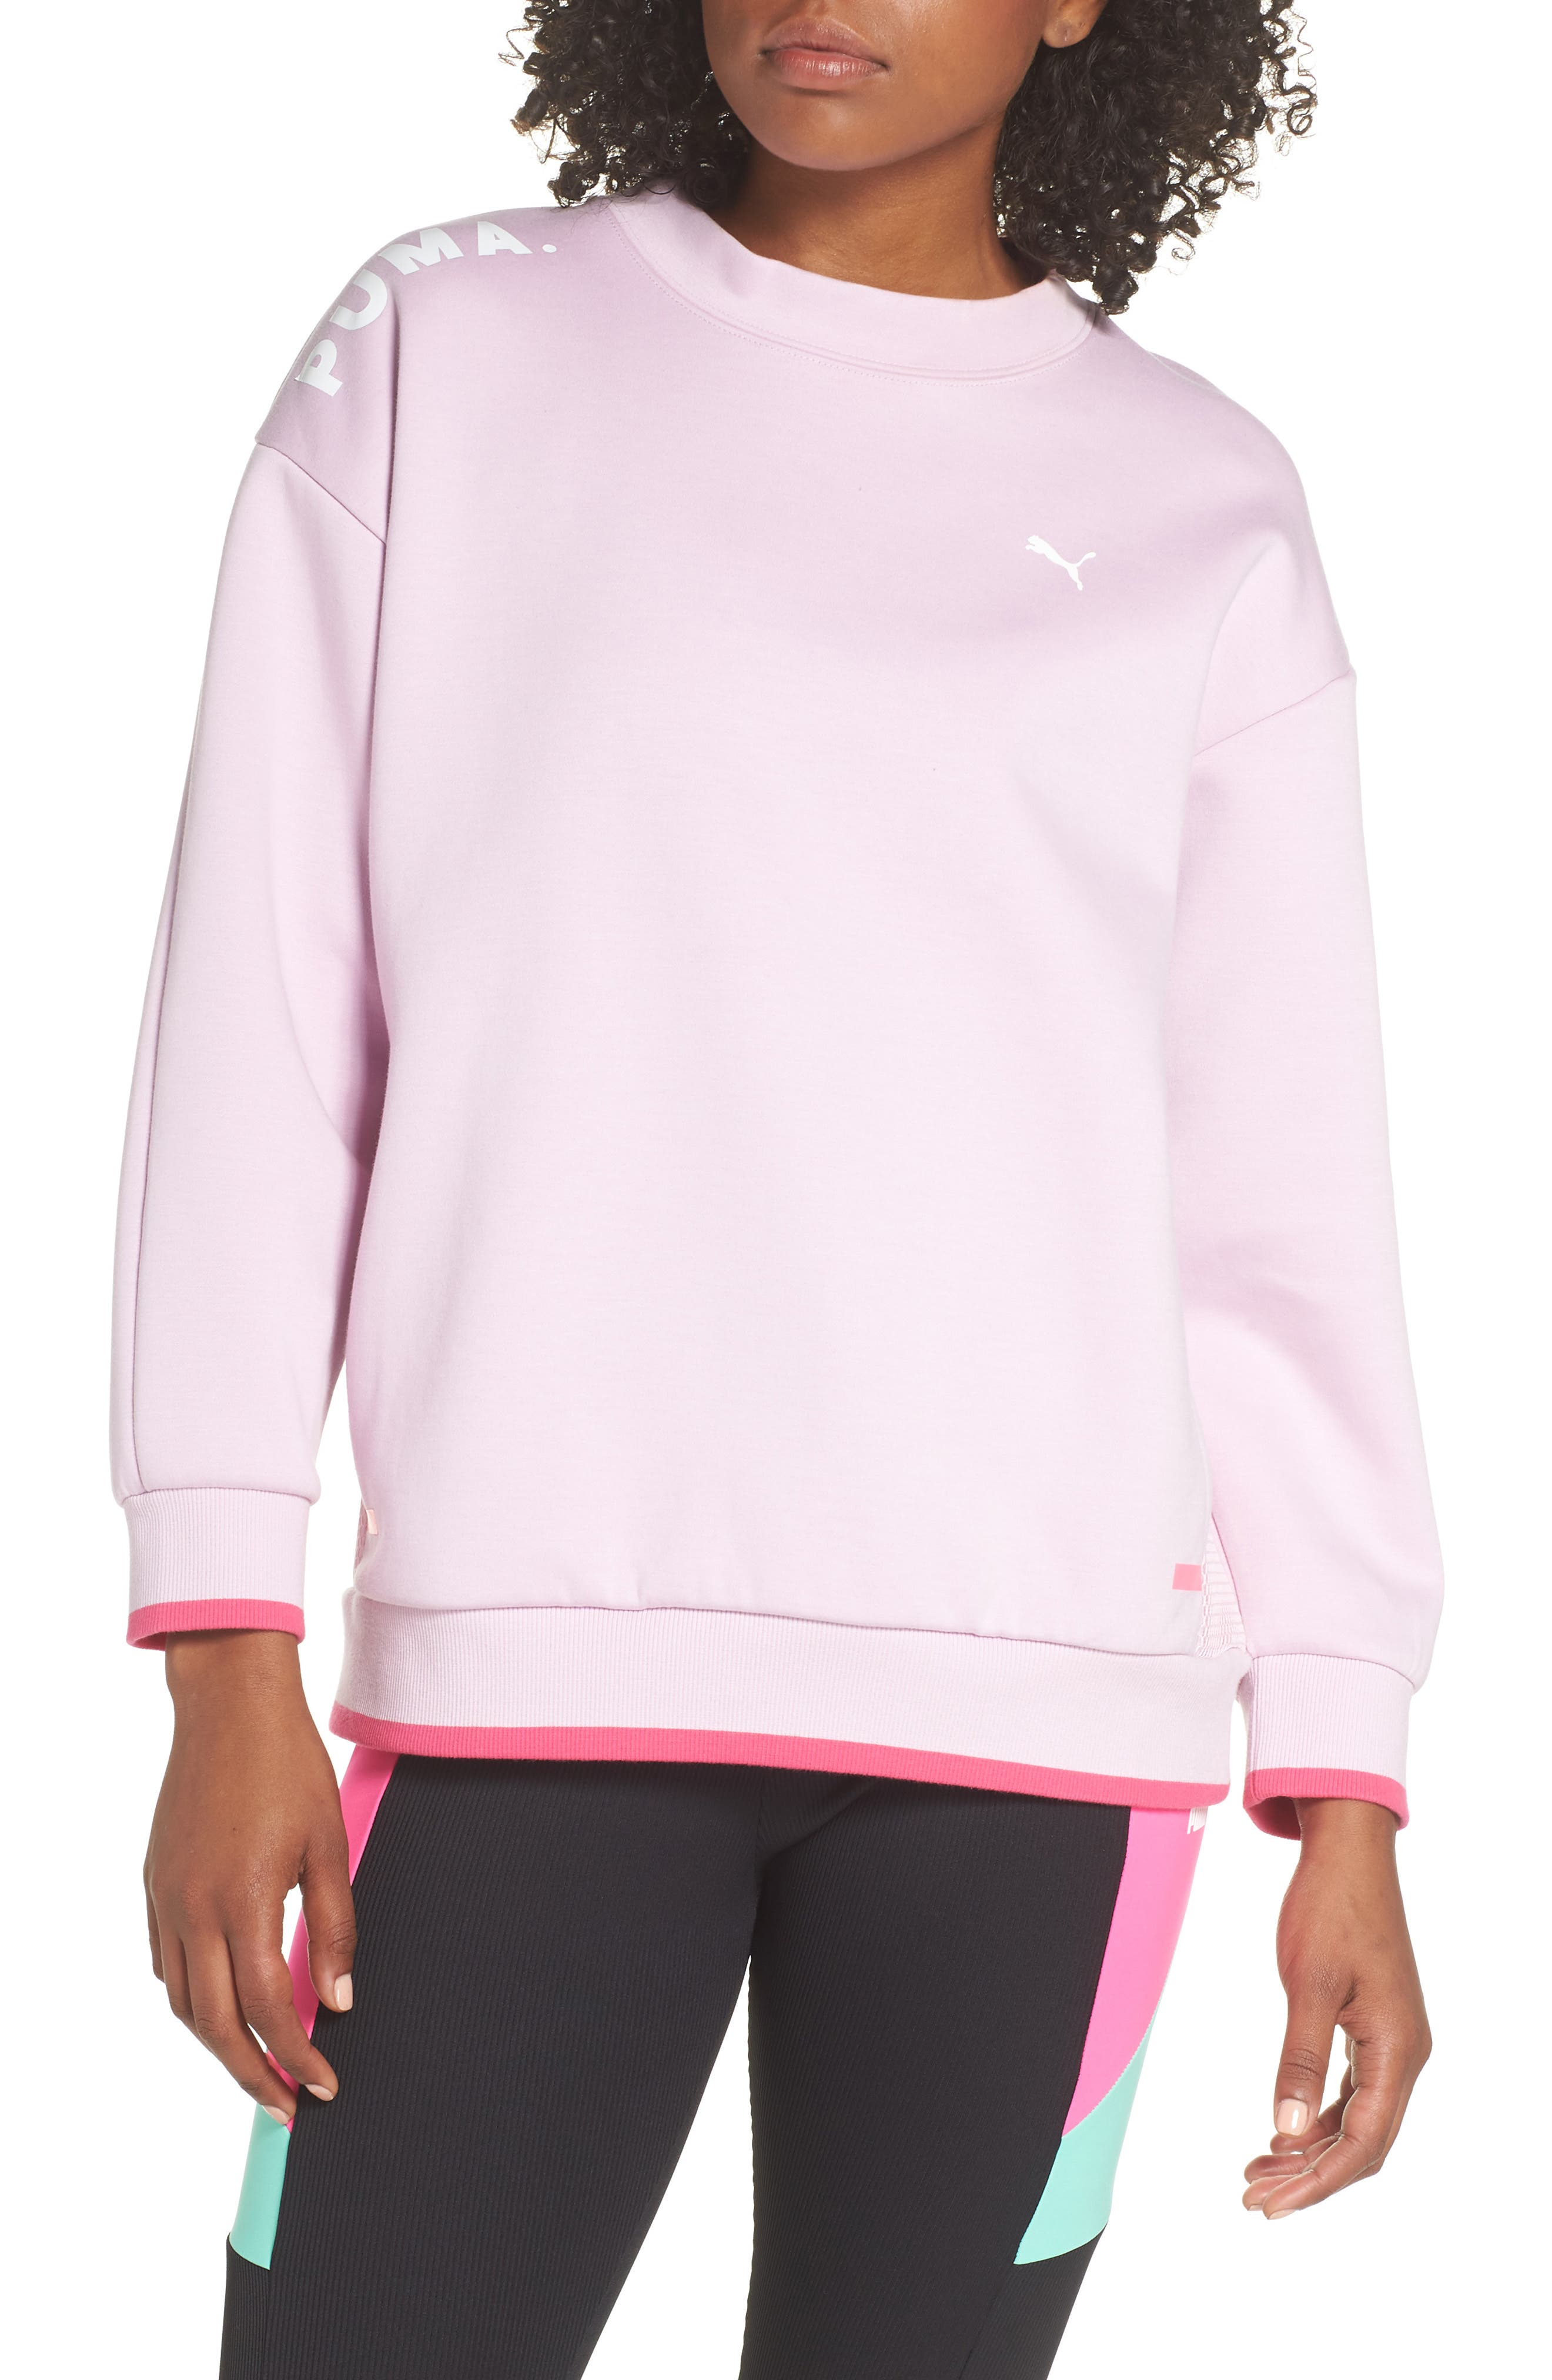 CHASE SWEATSHIRT from Nordstrom